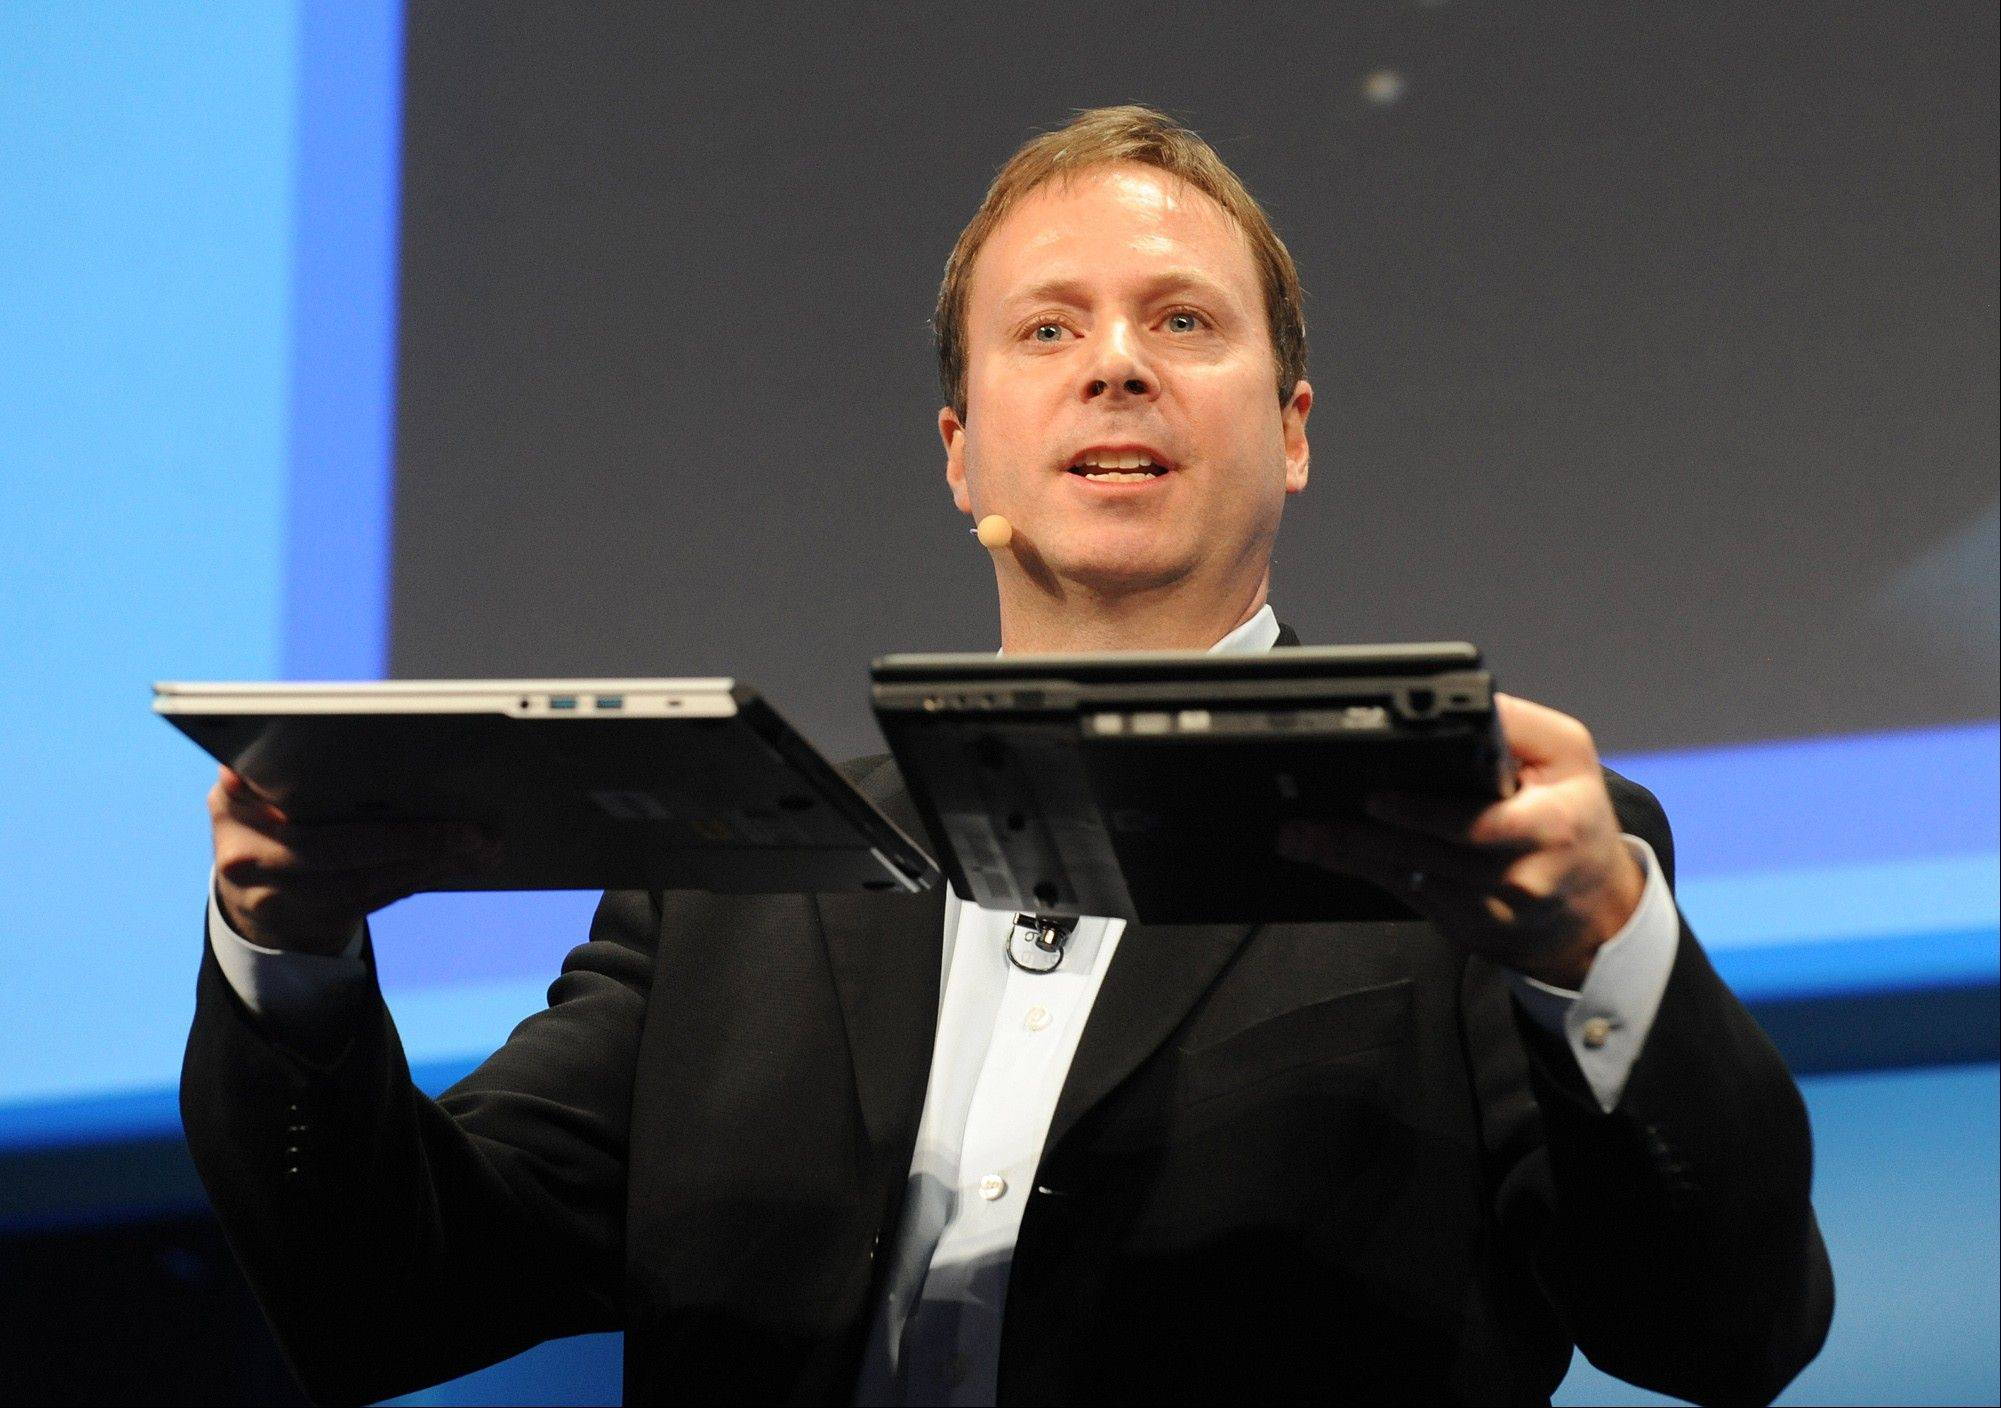 In this photo provided by Intel, Kirk Skaugen, vice president and general manager of Intelís PC Client Group shows off the new Ultrabook, left, next to an average 3-year-old laptop, at Intel's media briefing prior to opening of Consumer Electronic Show.